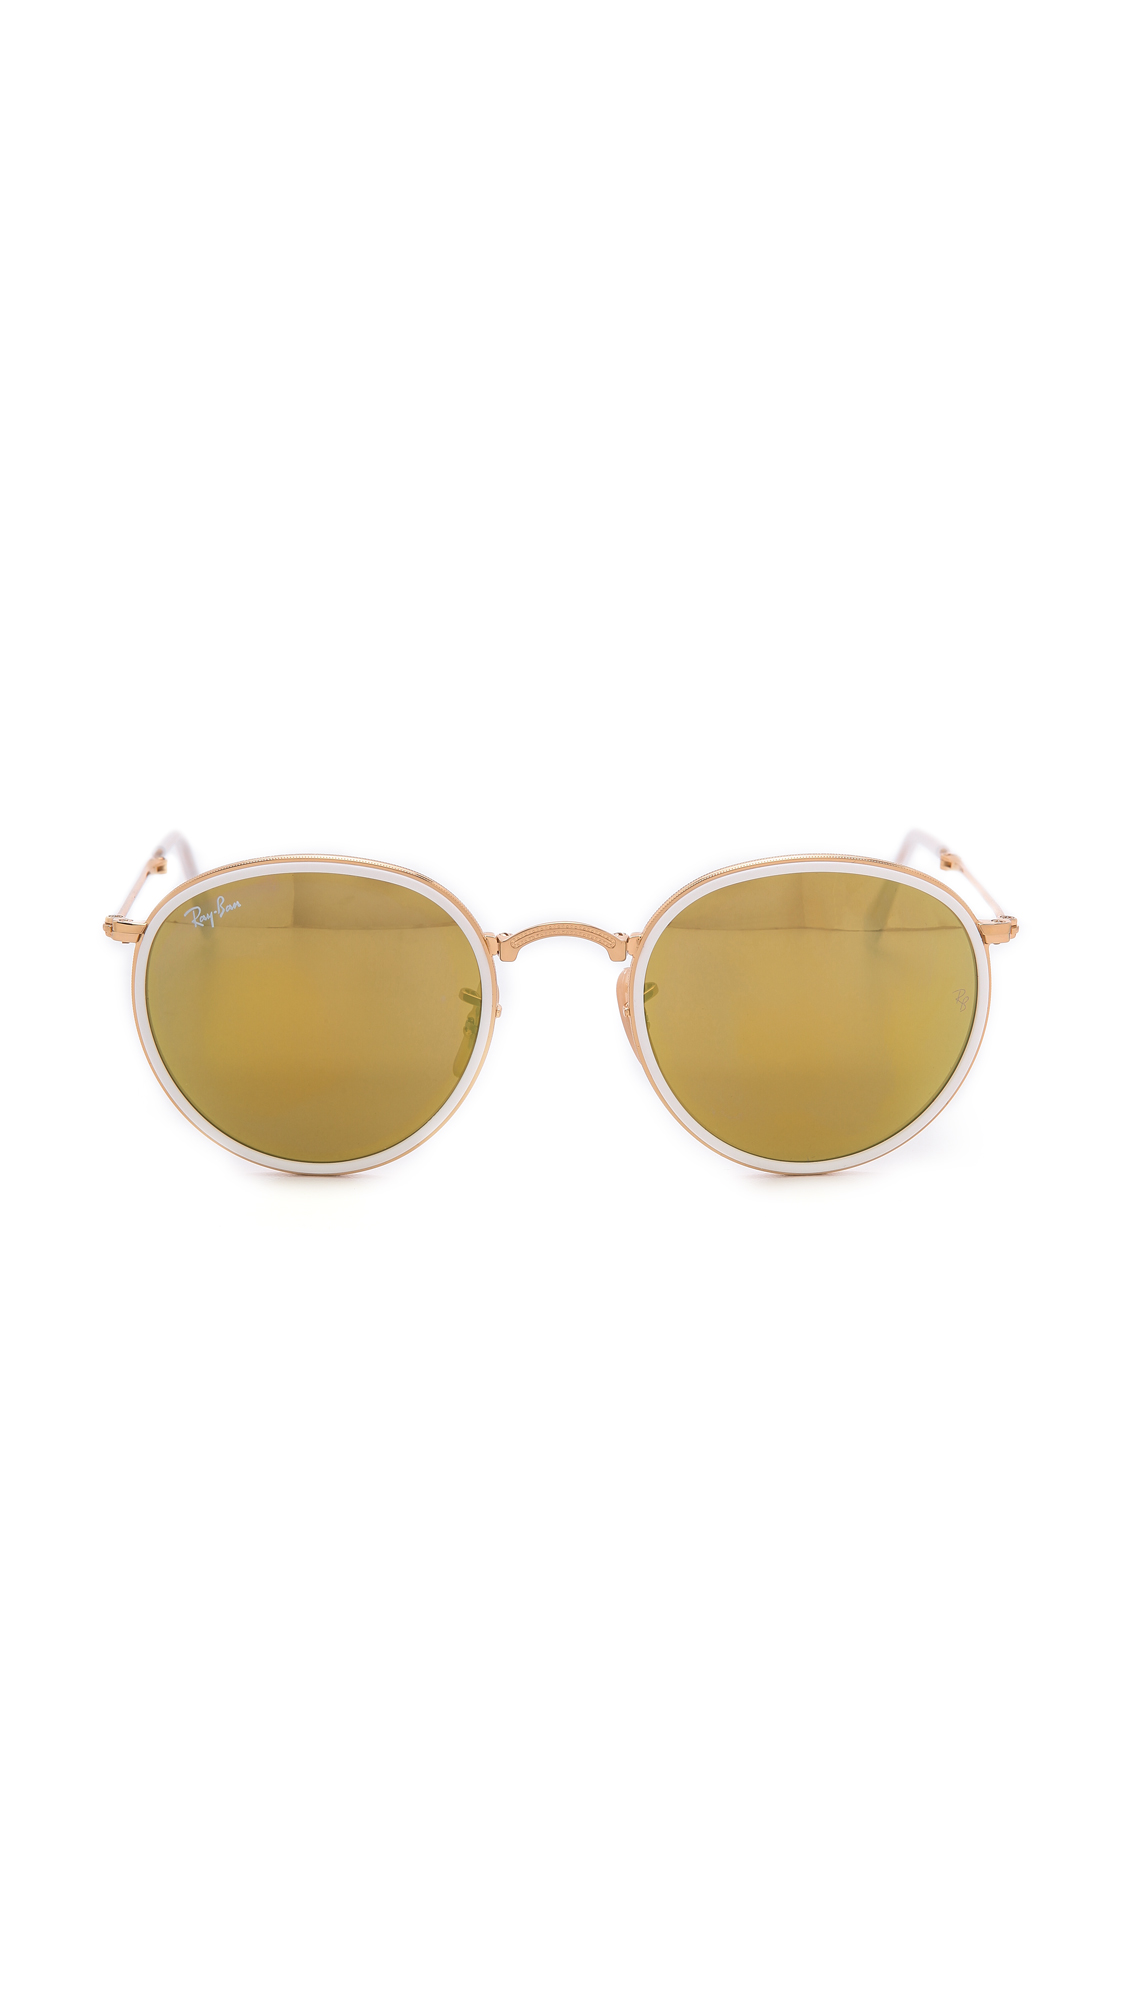 5848d47d4ba best ray-ban prices ray ban oversized clubmaster shopbop